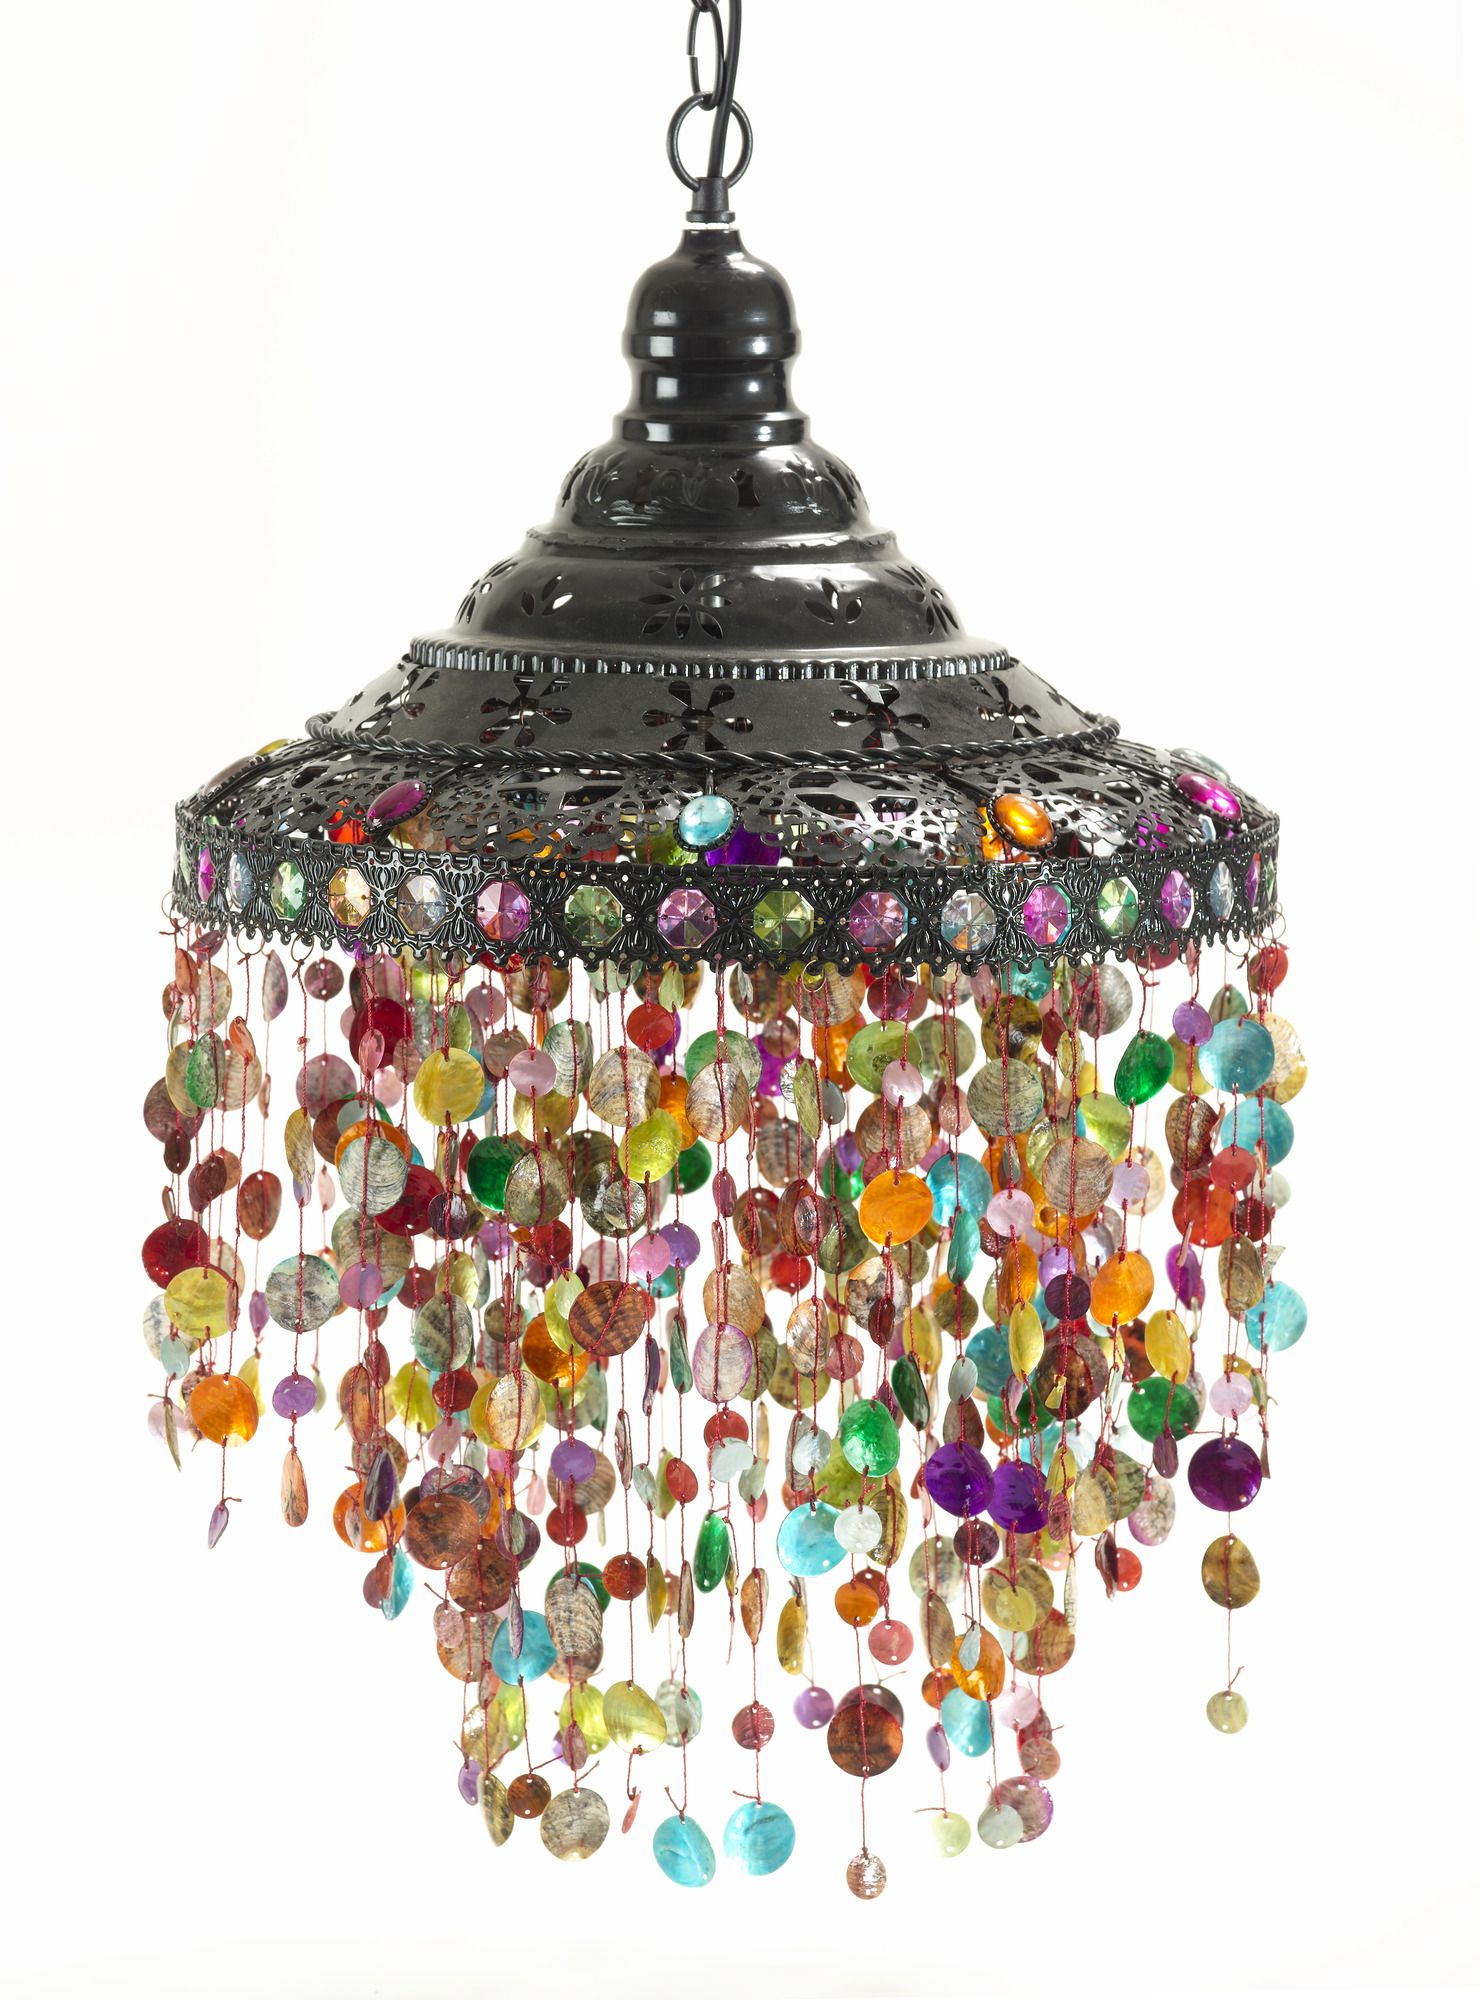 Beaded Hanging Lamp OP36 Casa Uno $100 Design